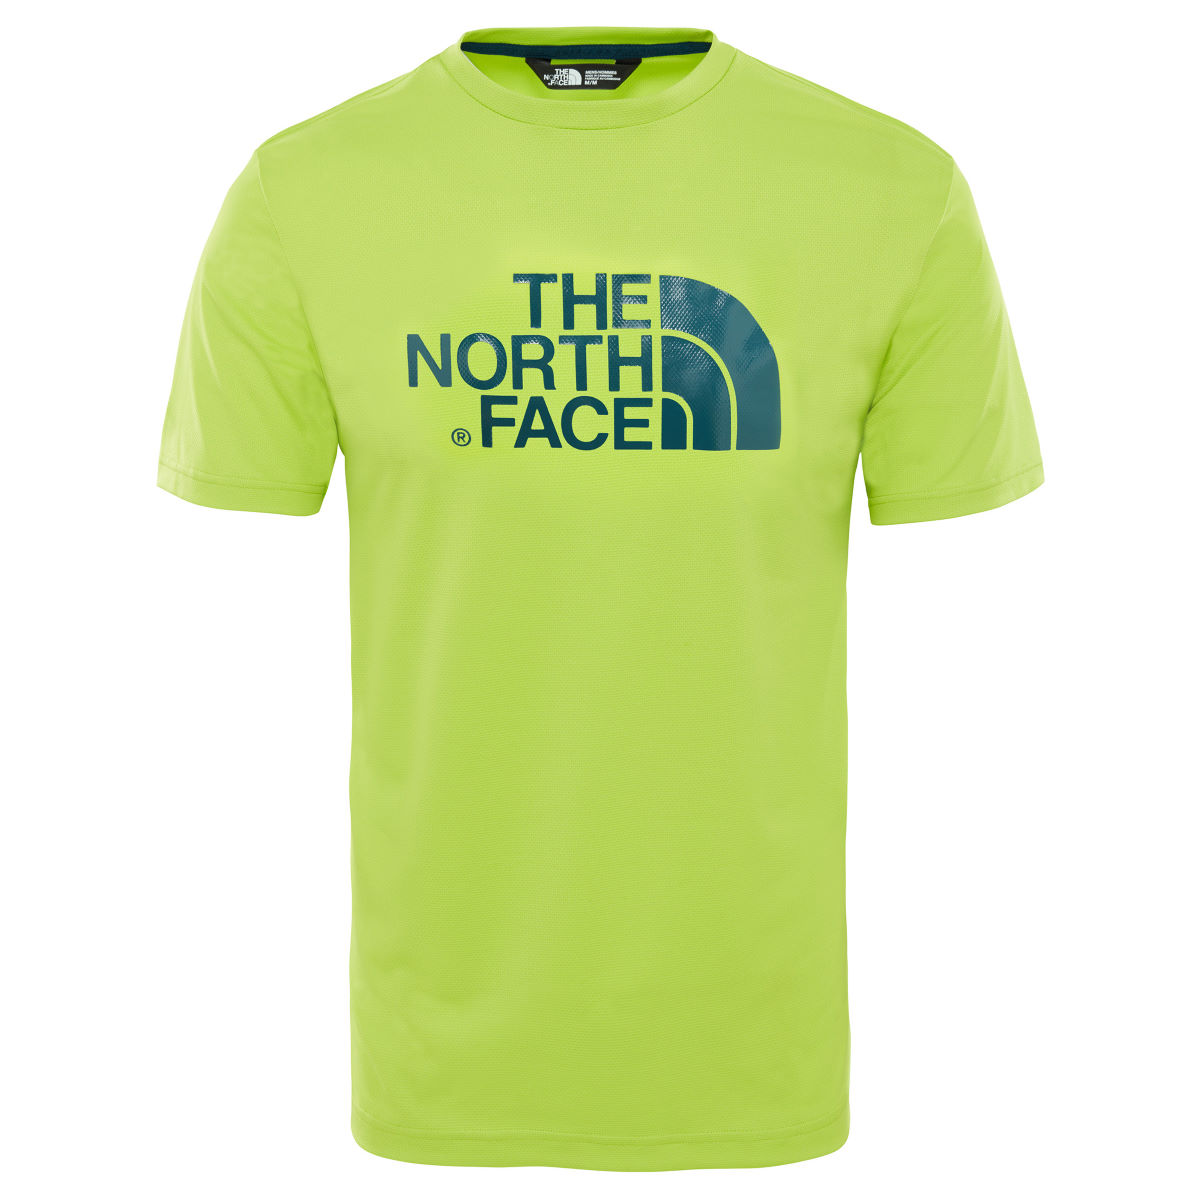 The North Face Tanken Tee   T-Shirts